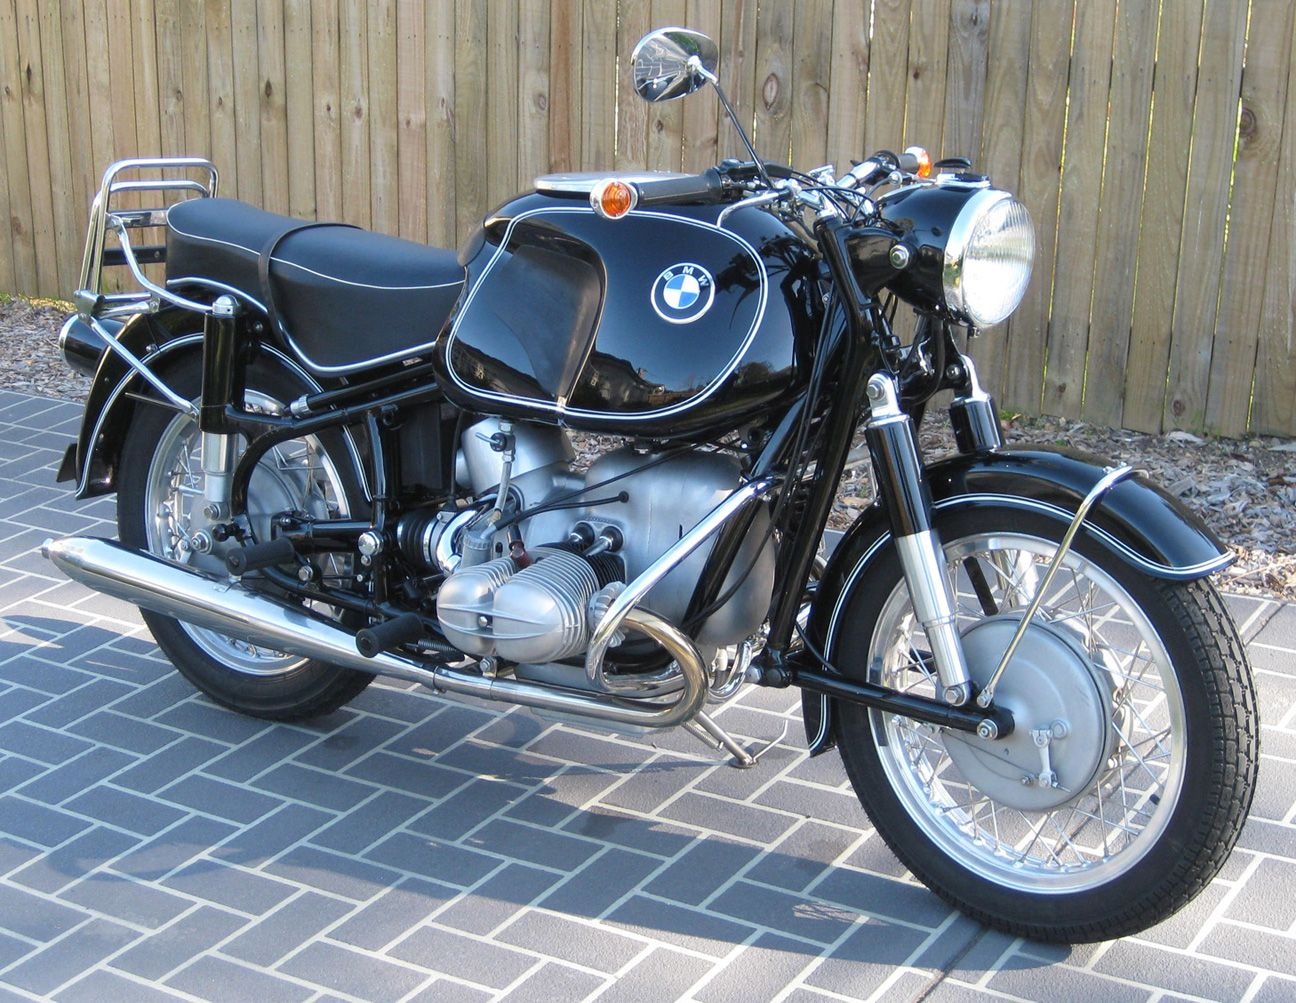 the velobanjogent: sorbo's recently restored bmw r69s 600cc twin..